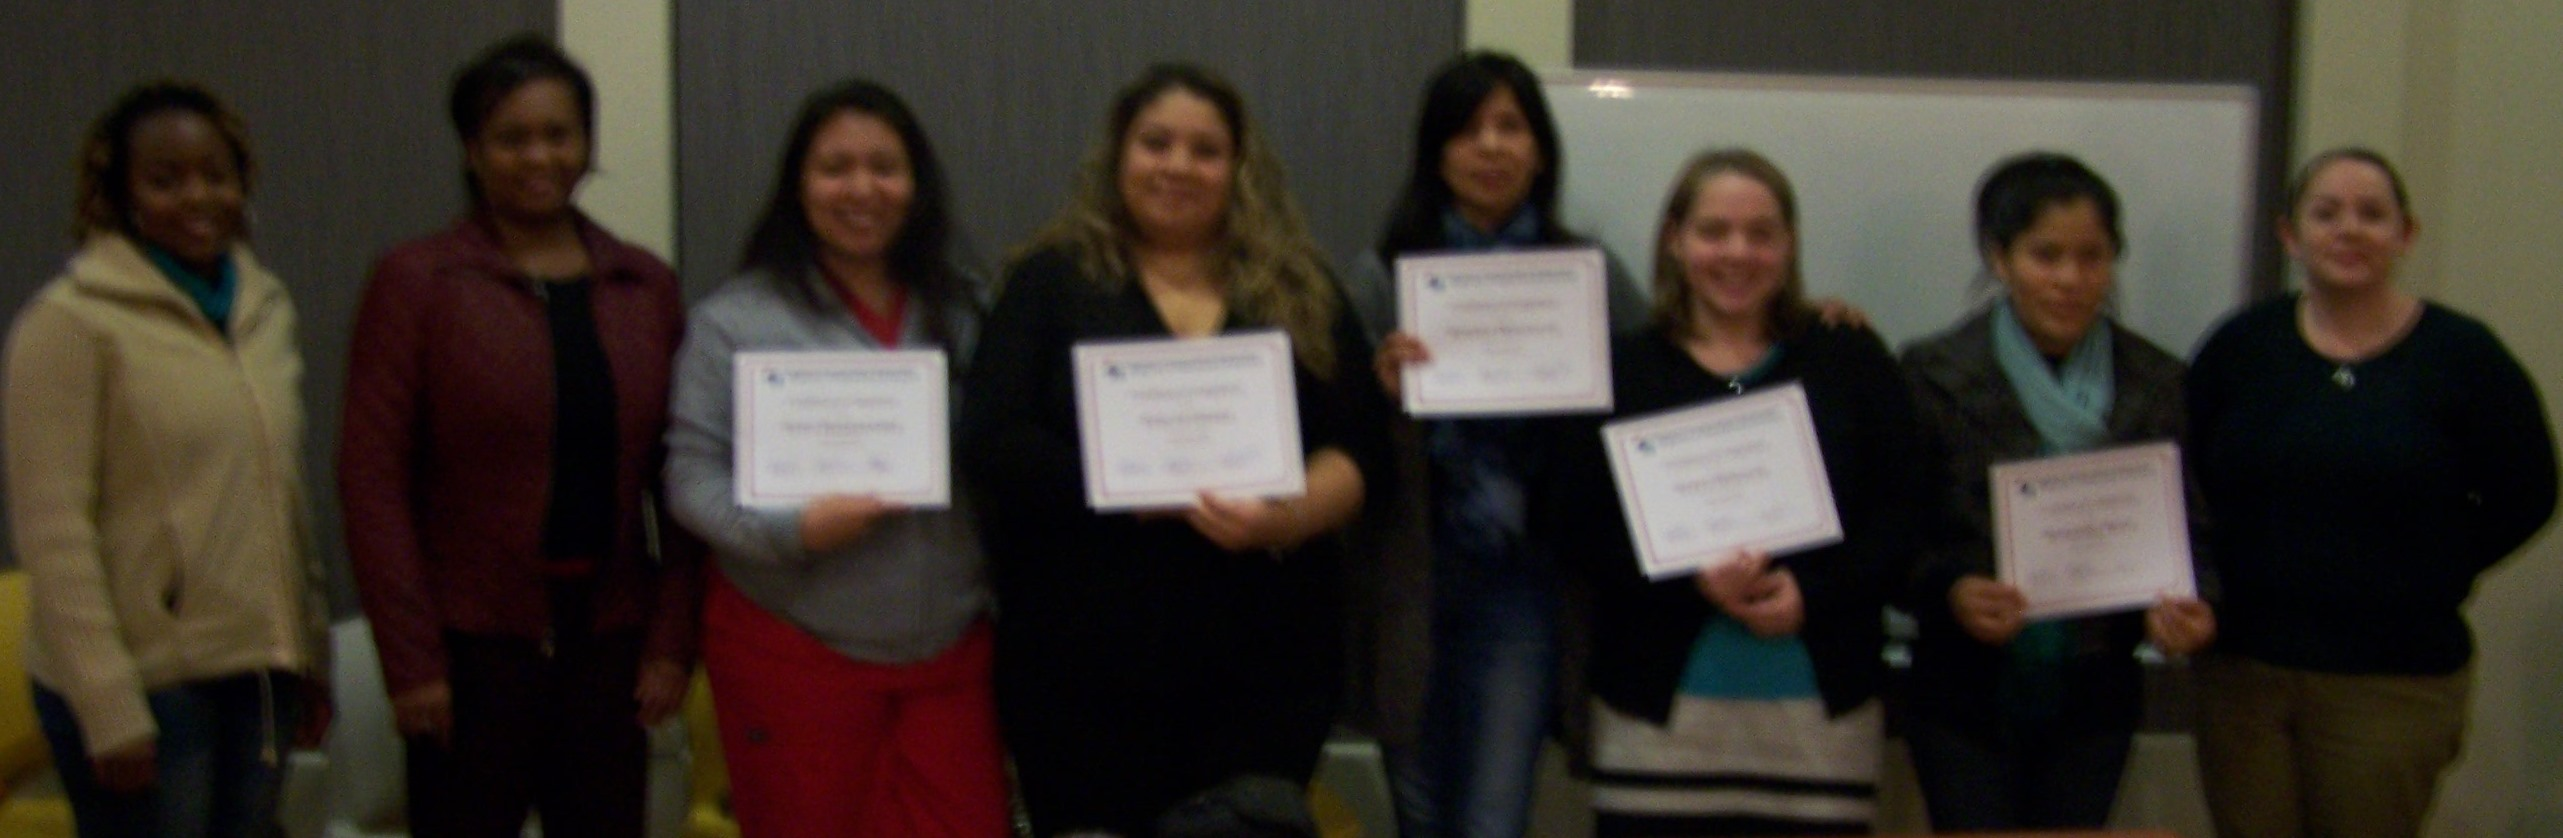 Participants pose with their certificates and coaches